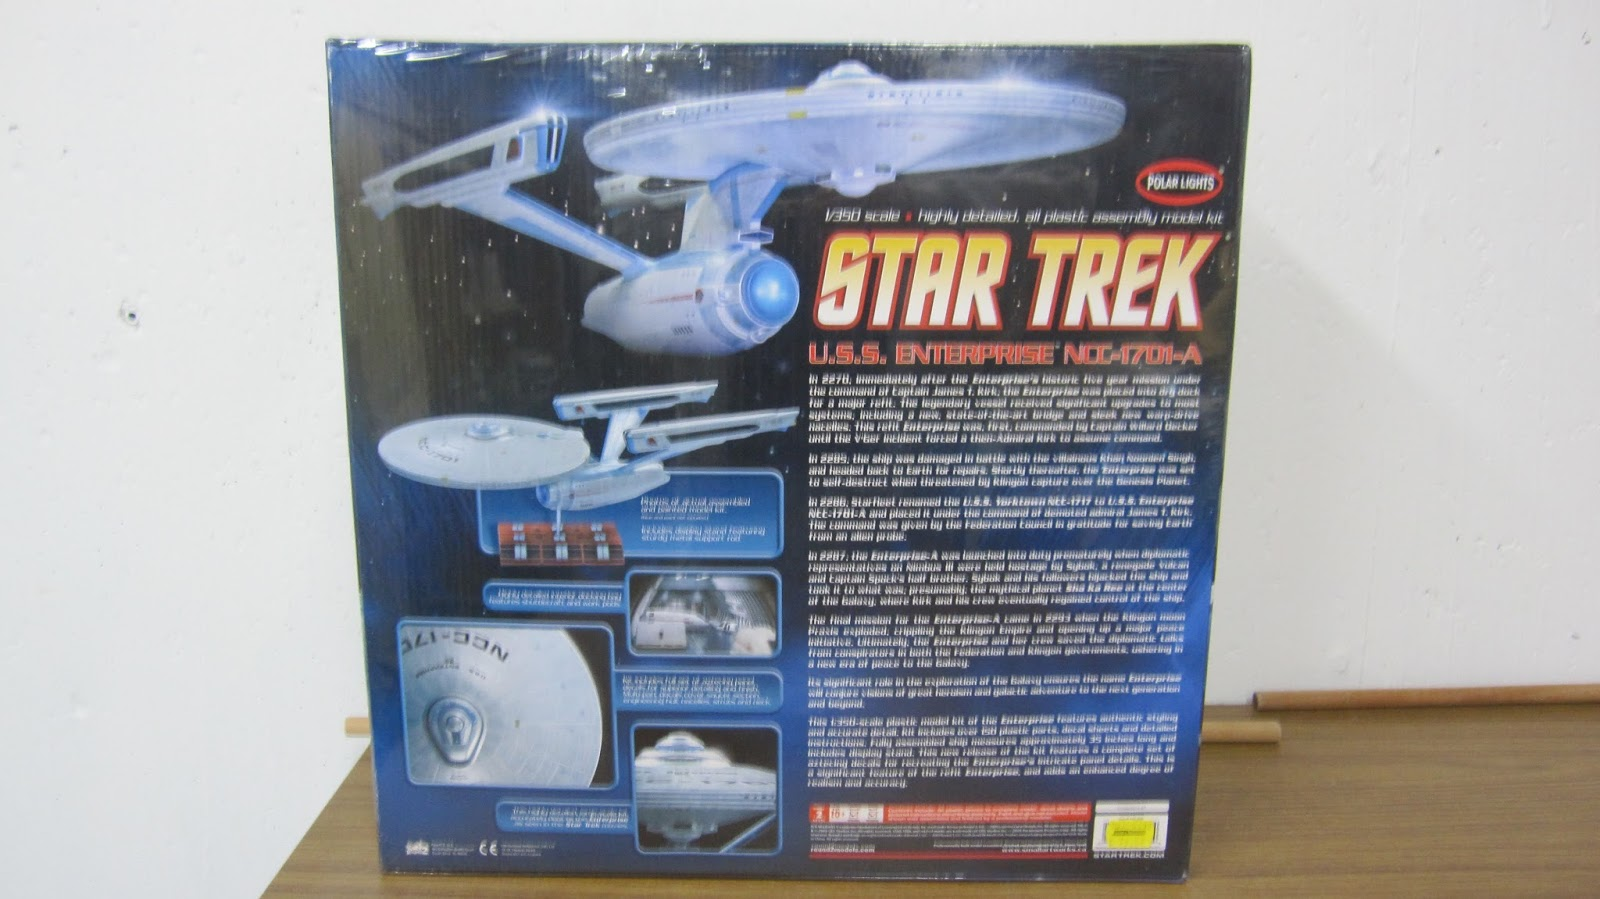 Star trek uss enterprise ncc refit 1 scale model - When You Open The Box To This Model It Is Packed To Me Size Wise This Is What The Original Amt Refit Looked Like As A Kid Except There Was Only 33